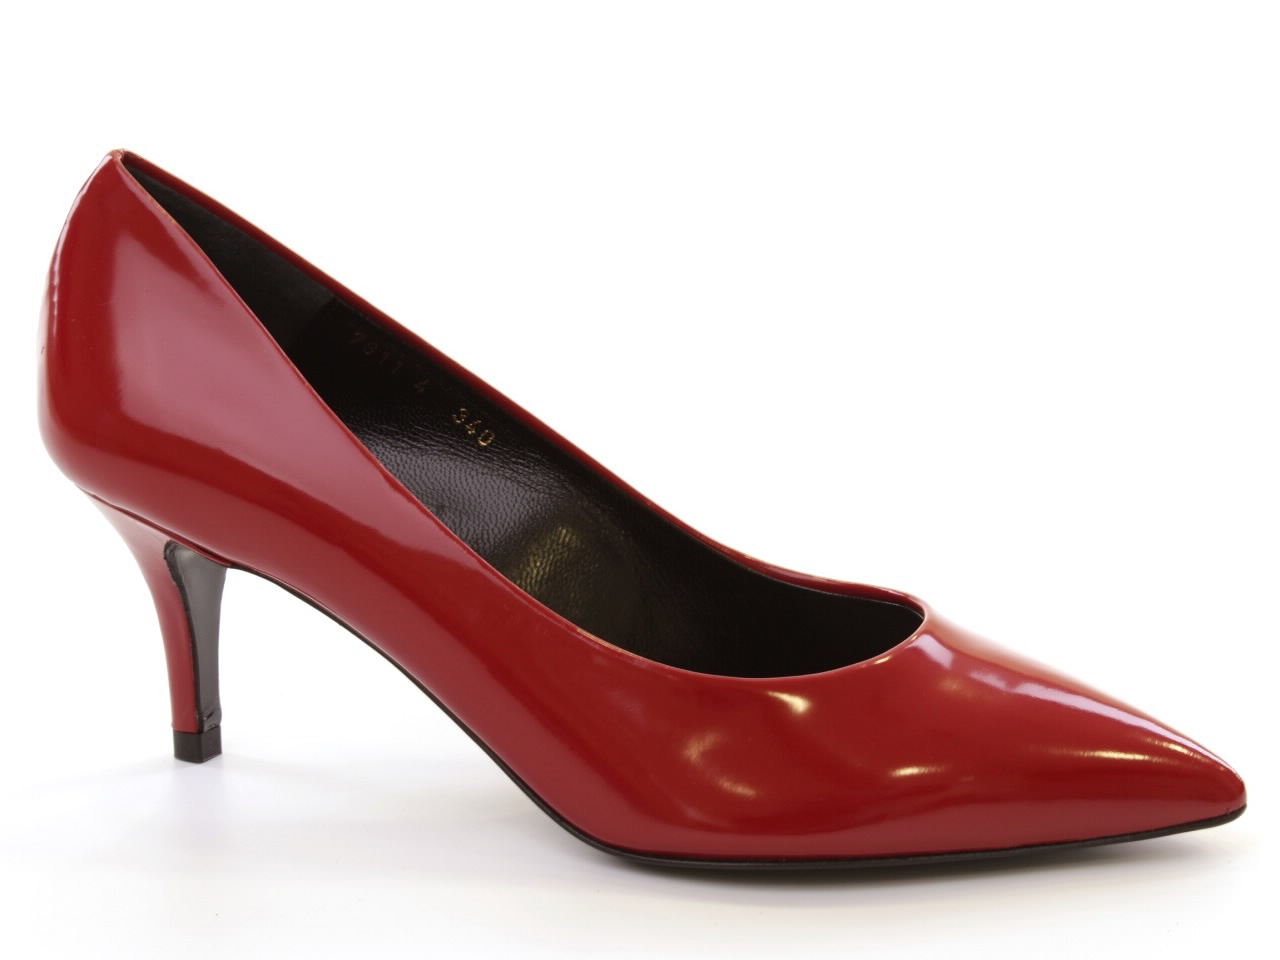 Pumps Vannel - 001 7811 44